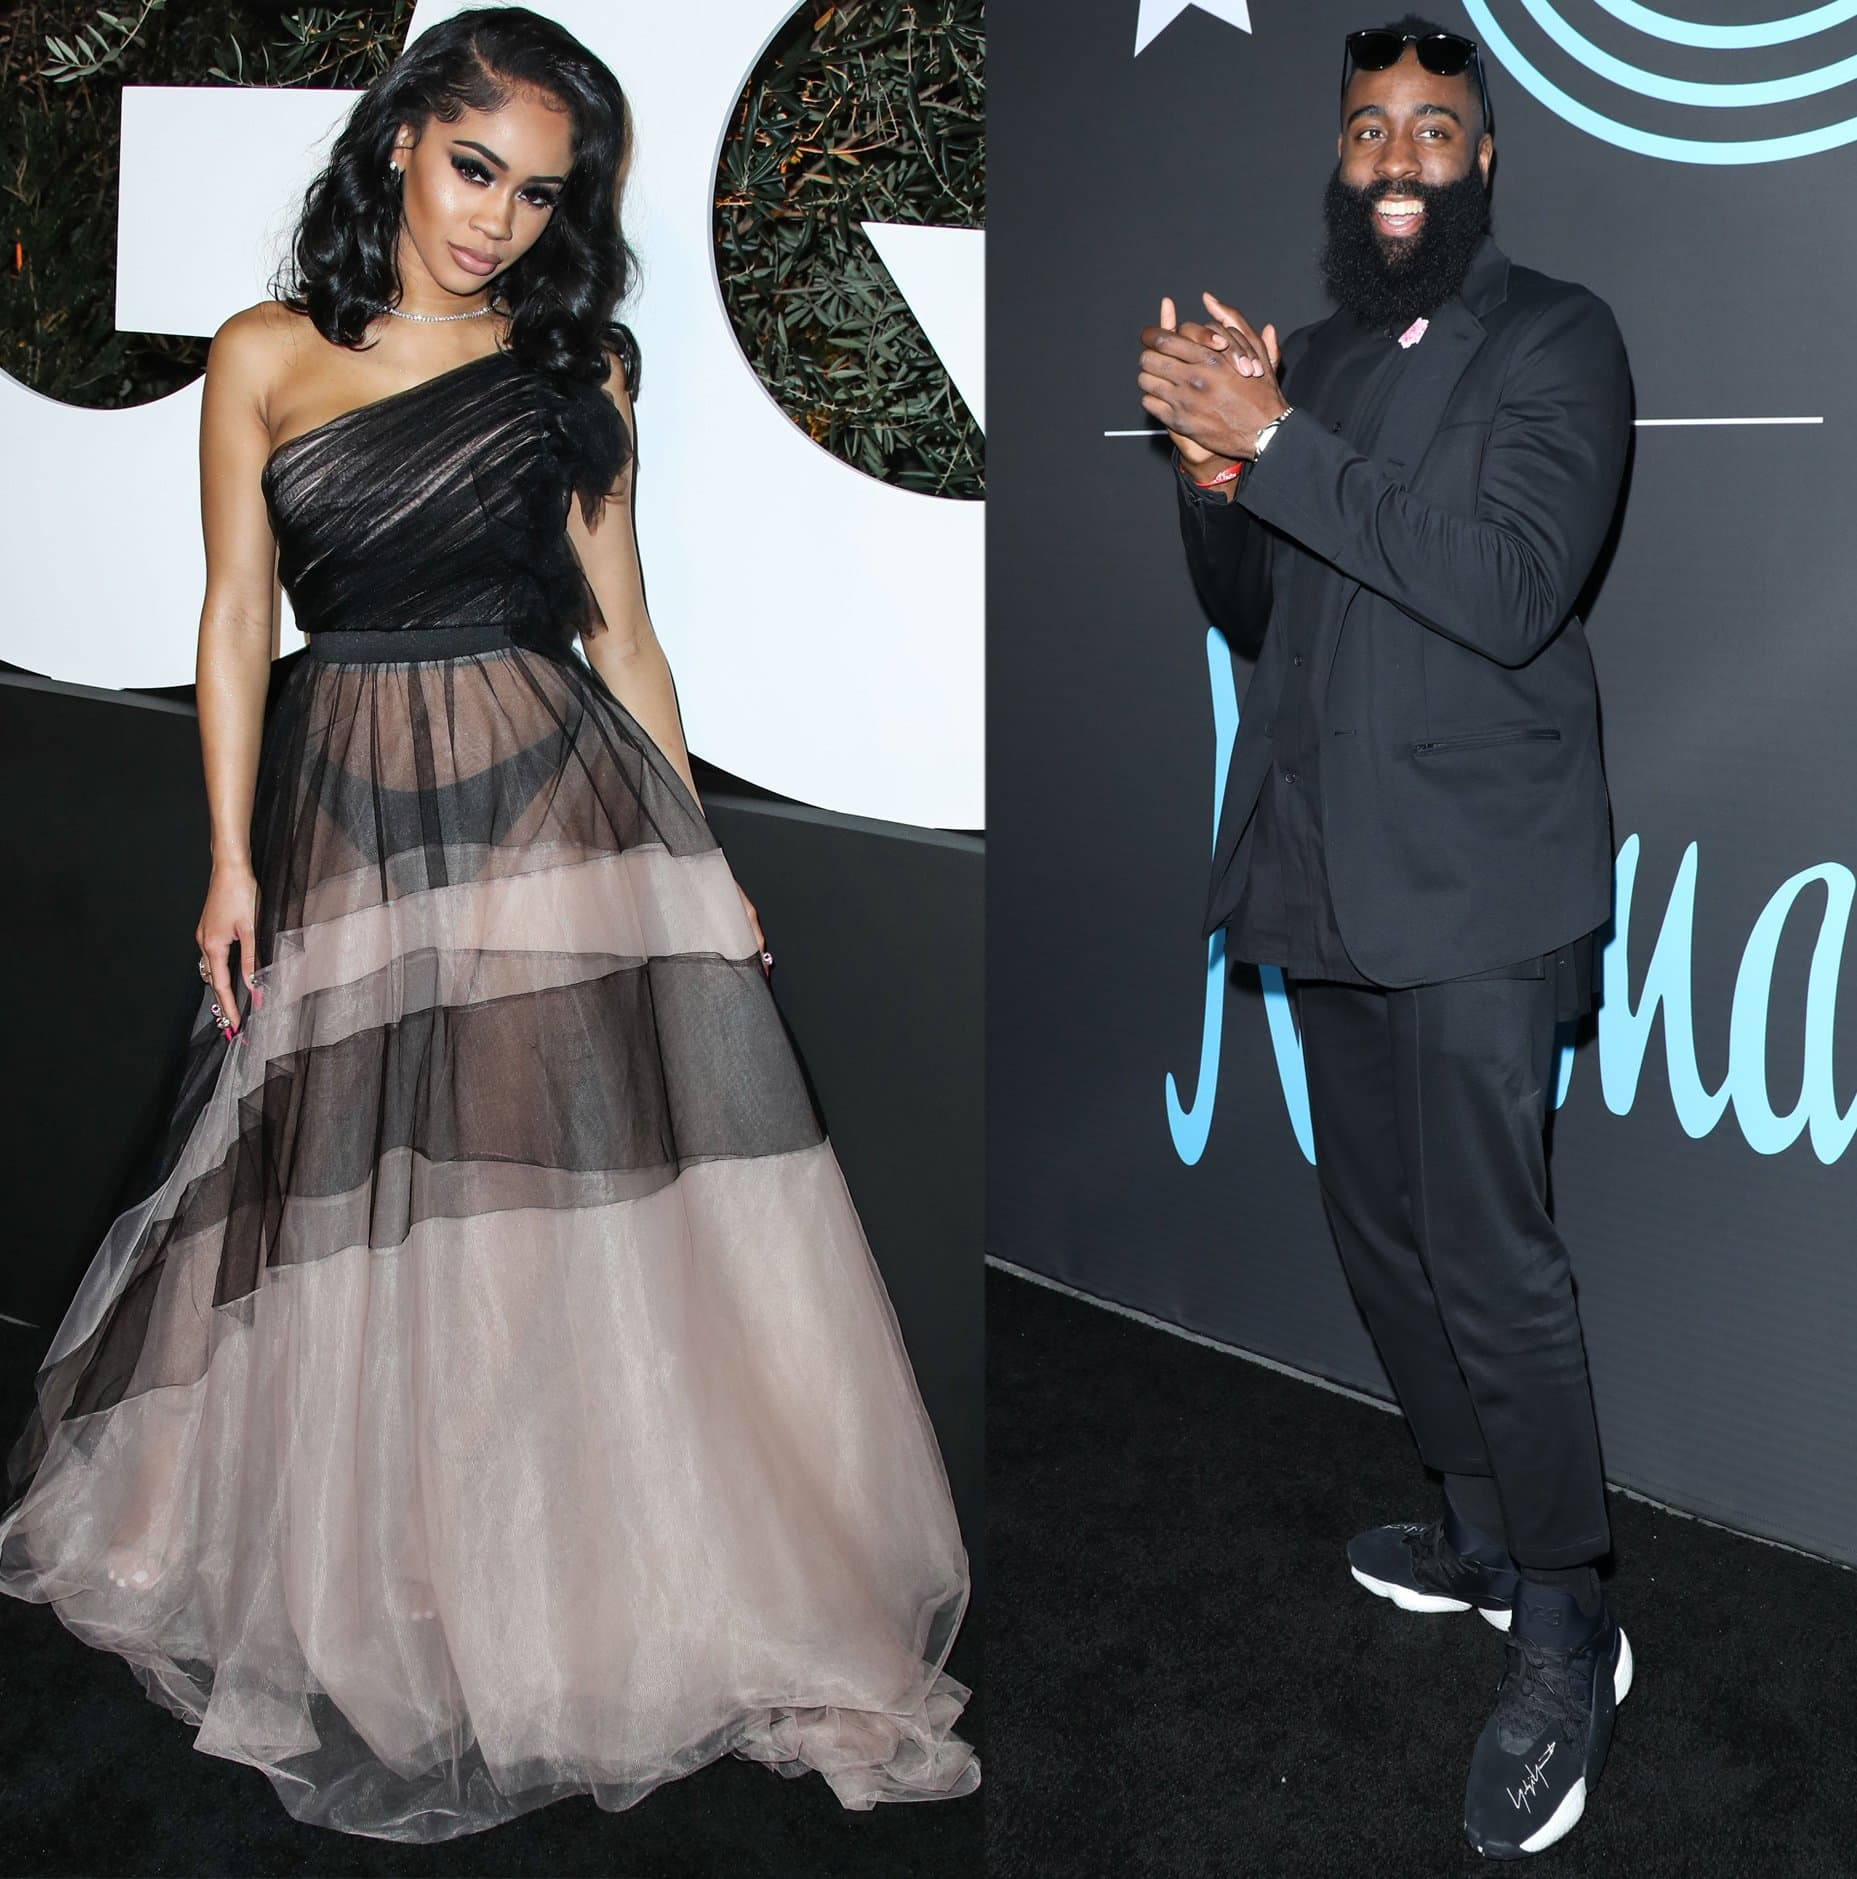 Rapper Saweetie and NBA superstar James Harden are rumored to be dating